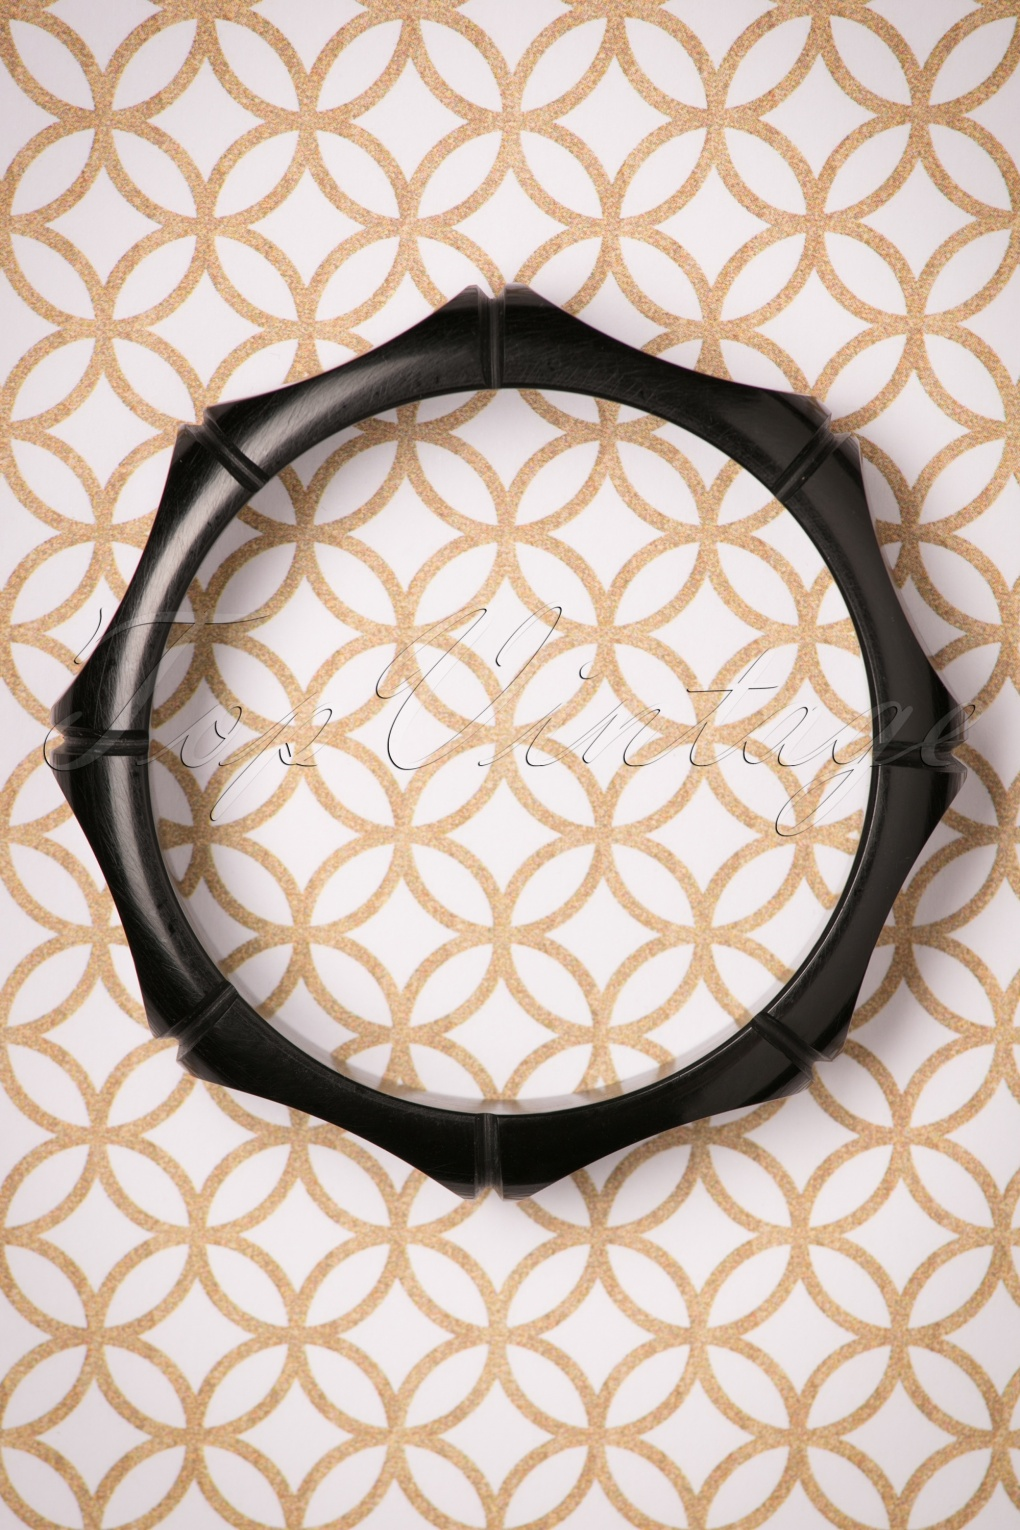 1930s Jewelry Styles and Trends TopVintage Exclusive  30s Octavia Bangle in Black £12.22 AT vintagedancer.com